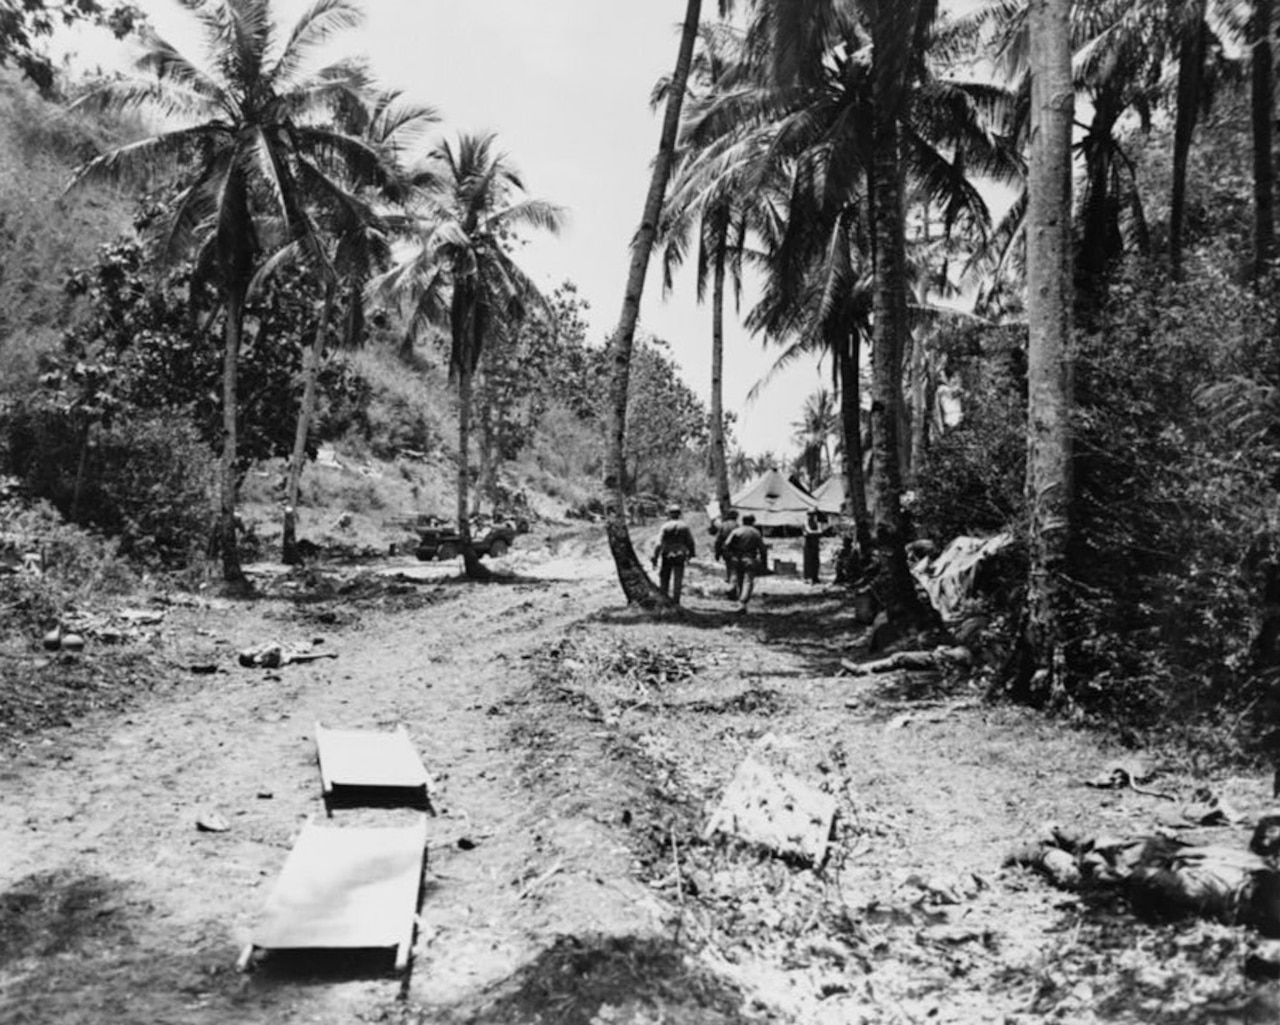 Two stretchers sit in a dirt roadway on a tropical island. A few men can be seen in the background.